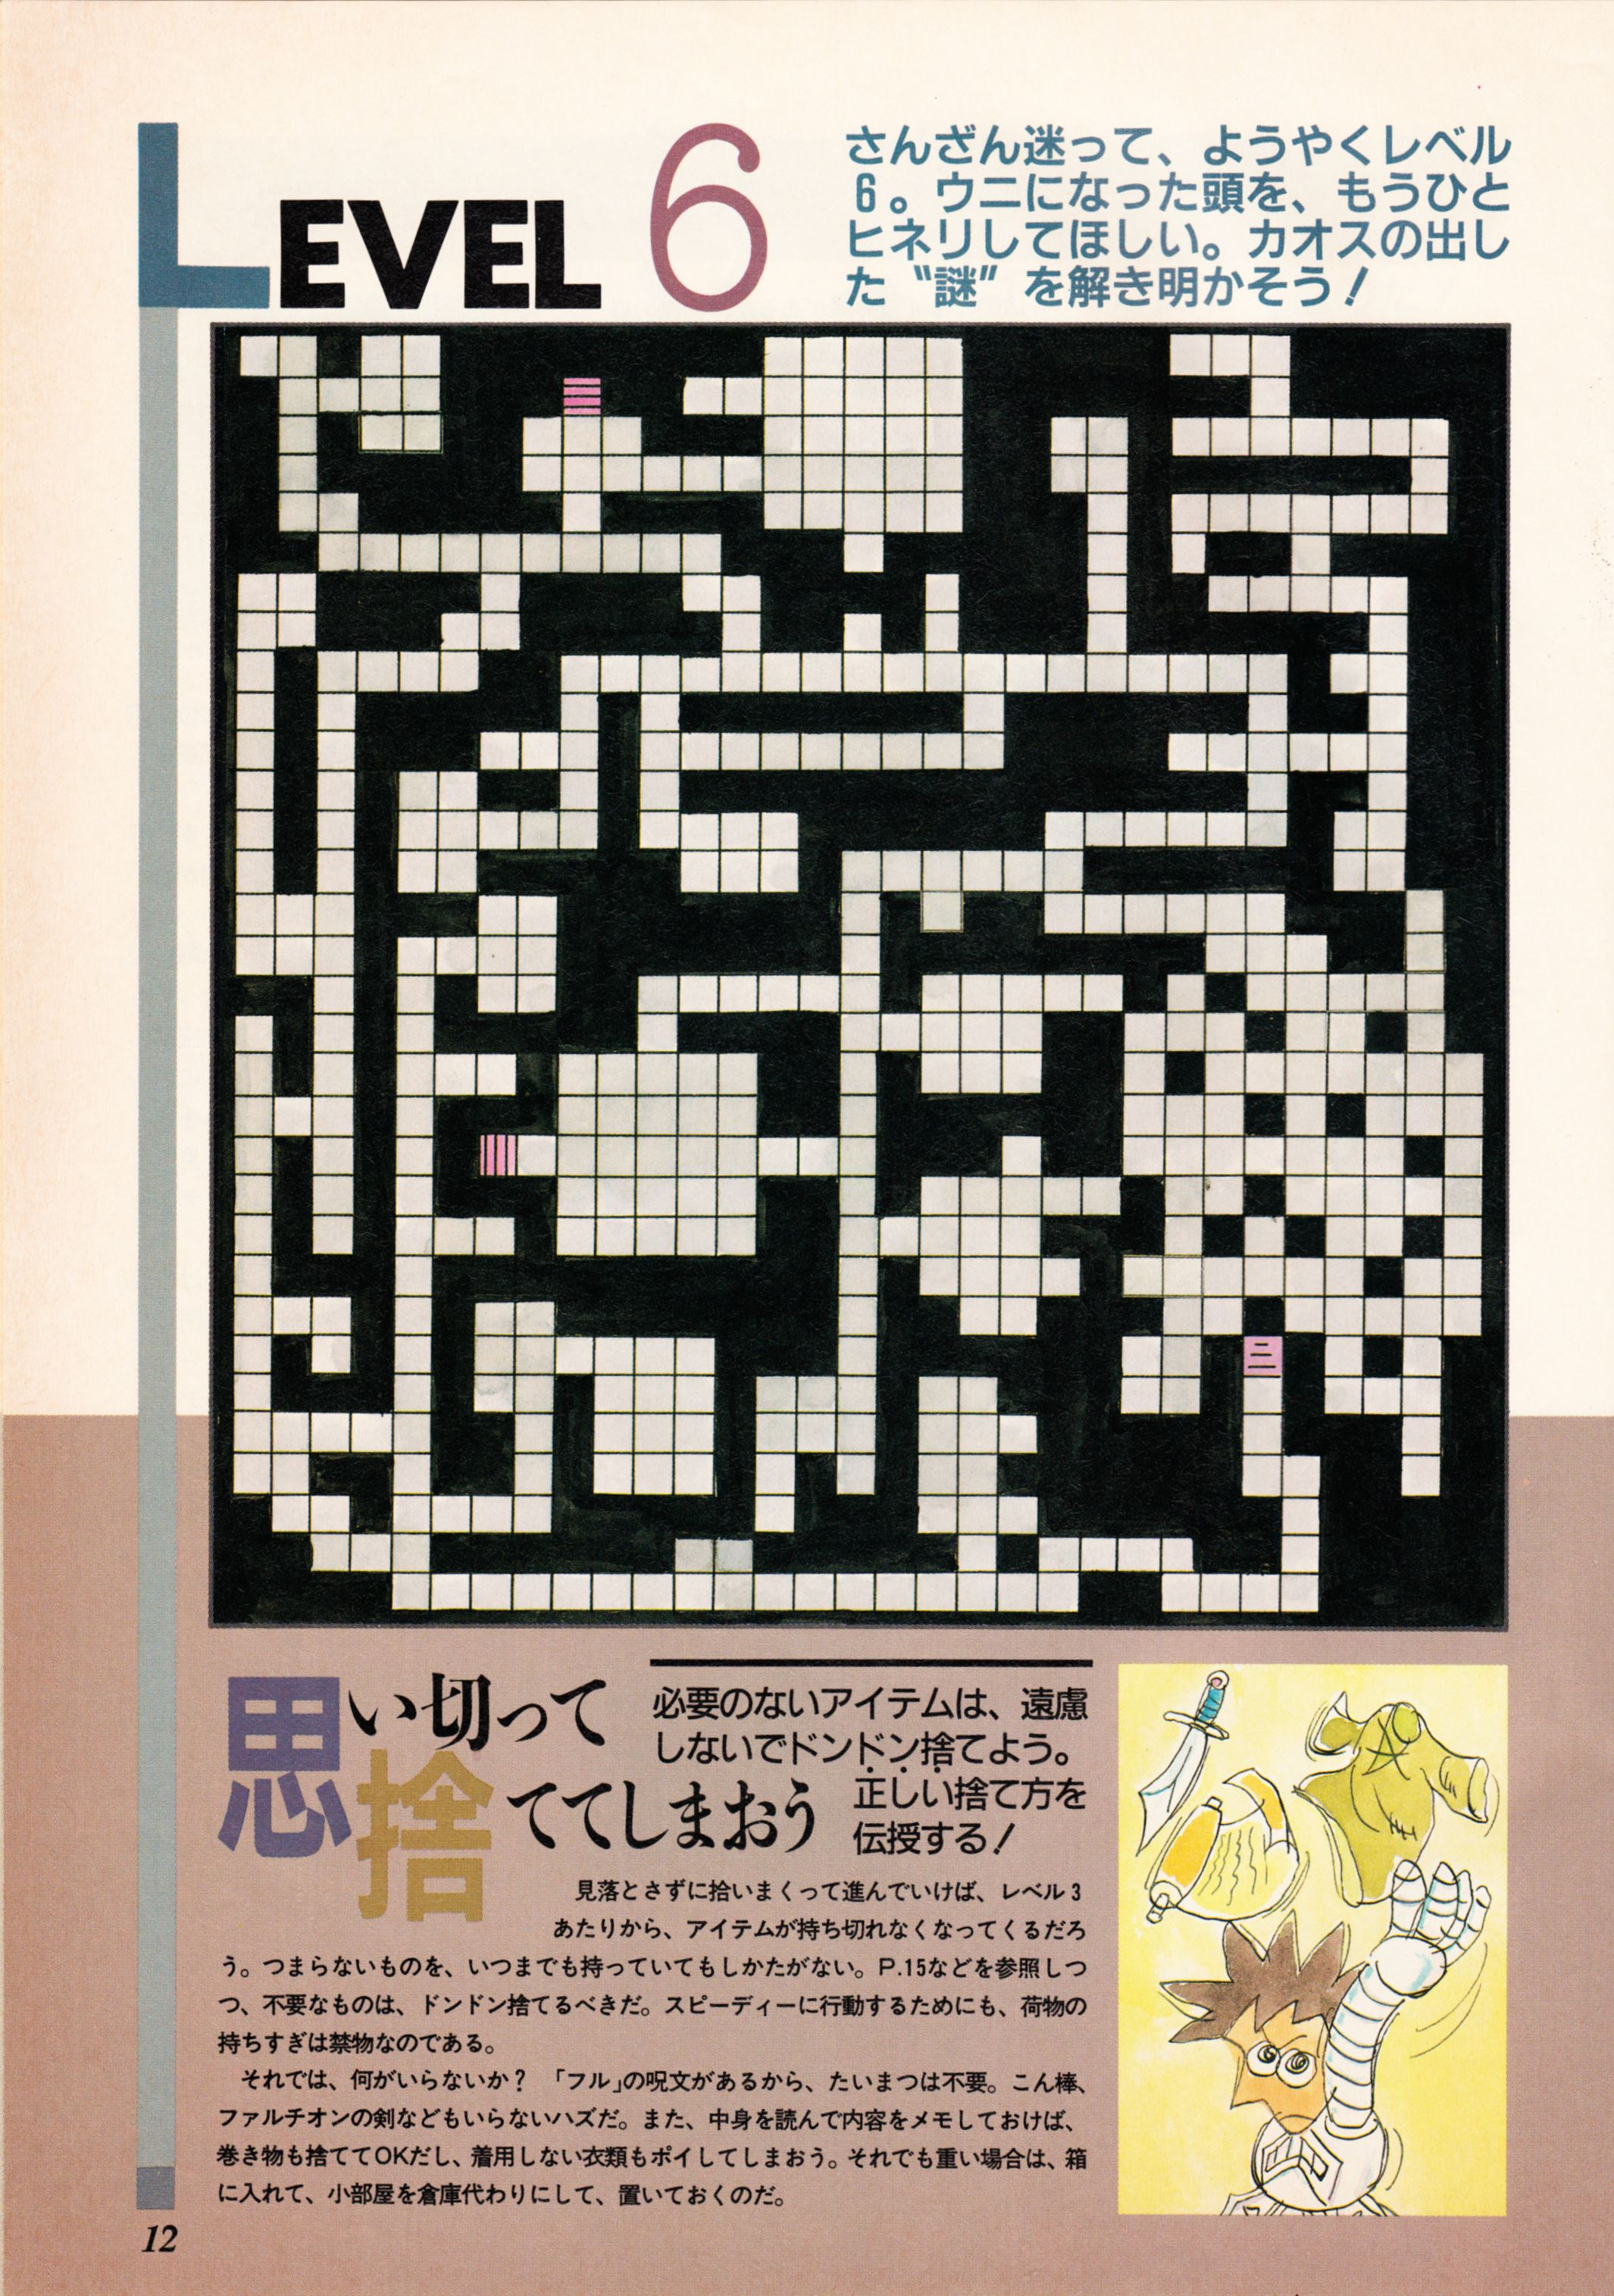 Supplement - Dungeon Master Companion Manual Guide published in Japanese magazine 'Popcom', Vol 4 No 1 01 April 1990, Page 14